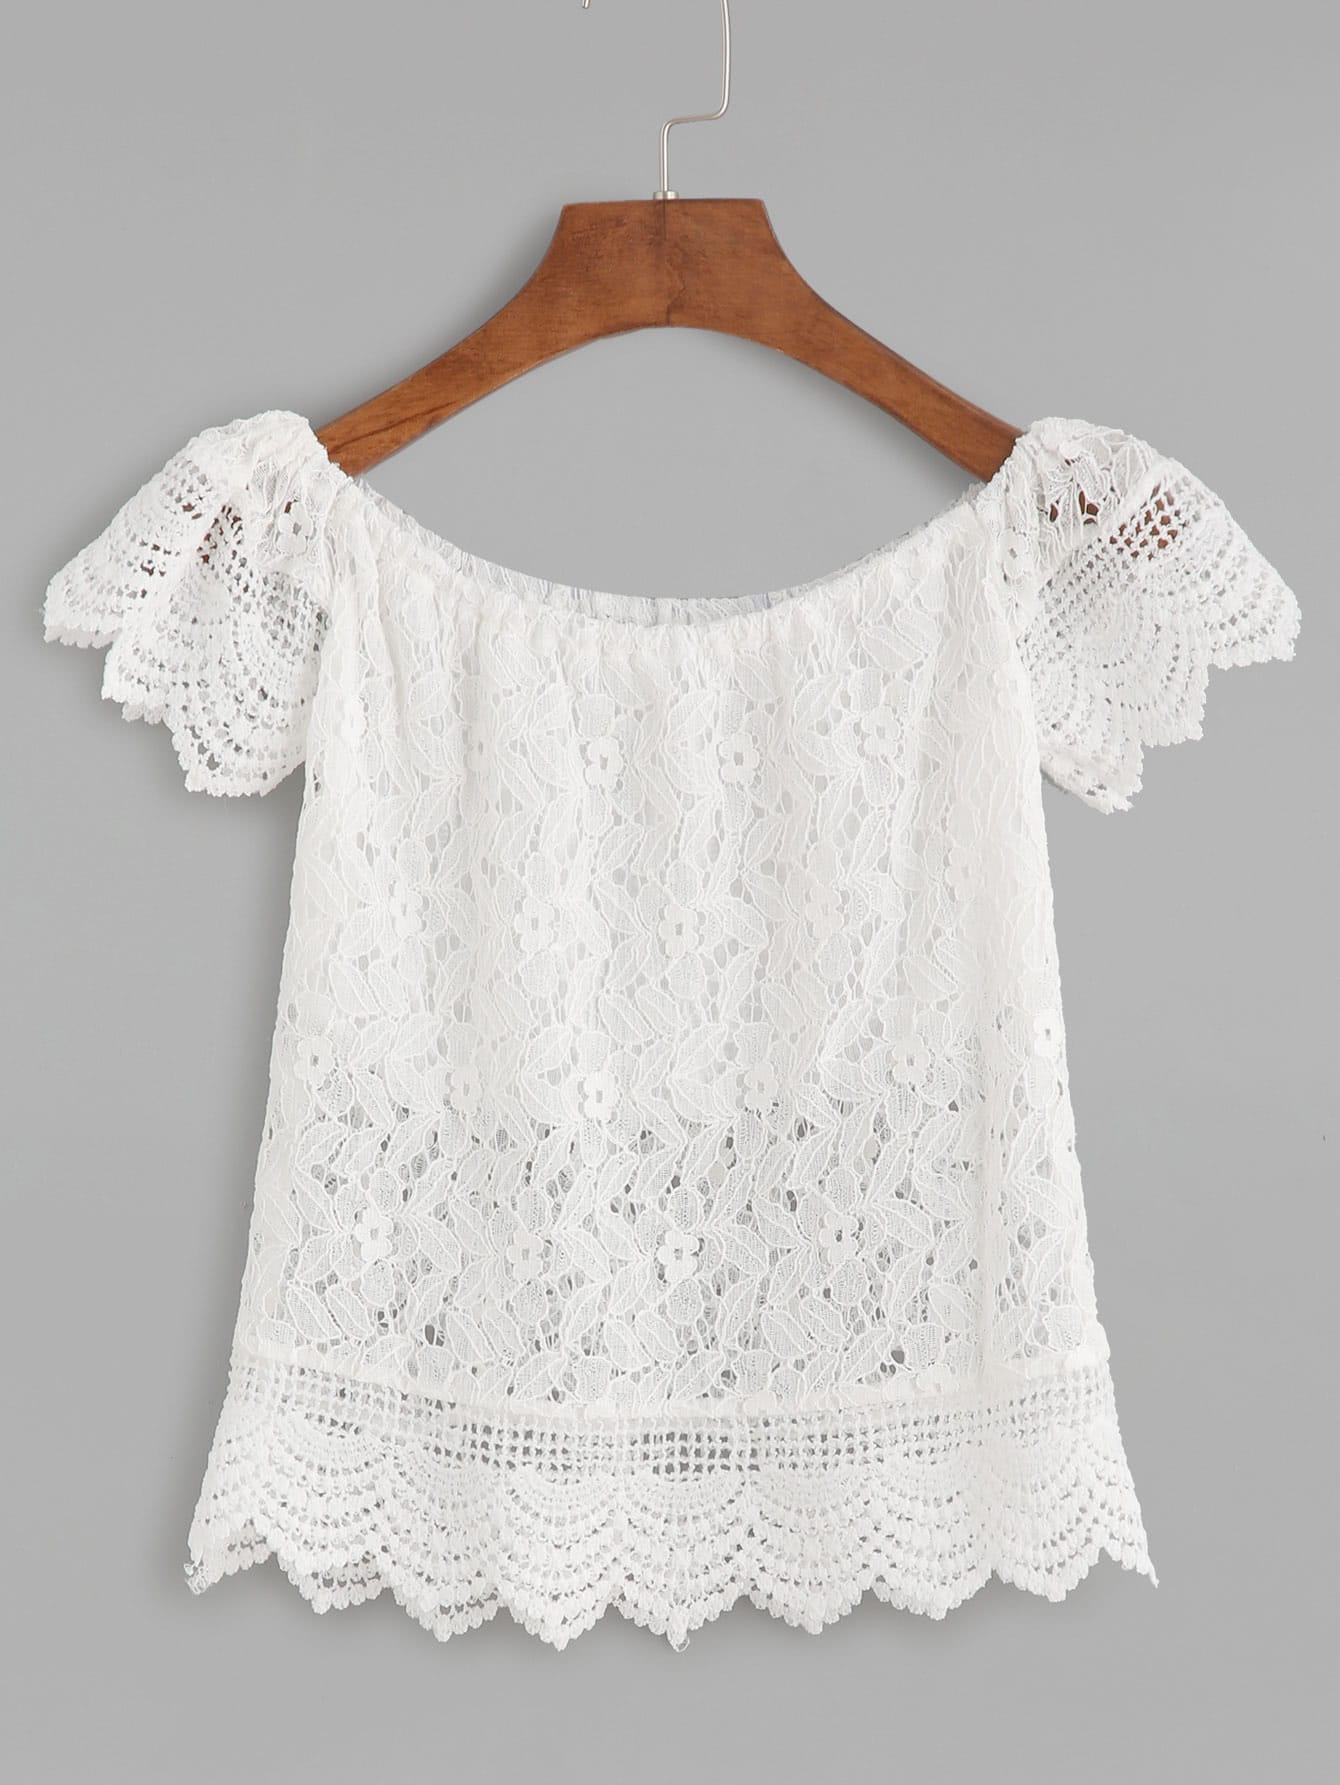 2c89f15c63 Boat Neck Crochet Lace Scalloped Hollow Out Blouse · Hollow Out Tassel Hem  Top · Hollow Out Lace Panel ...